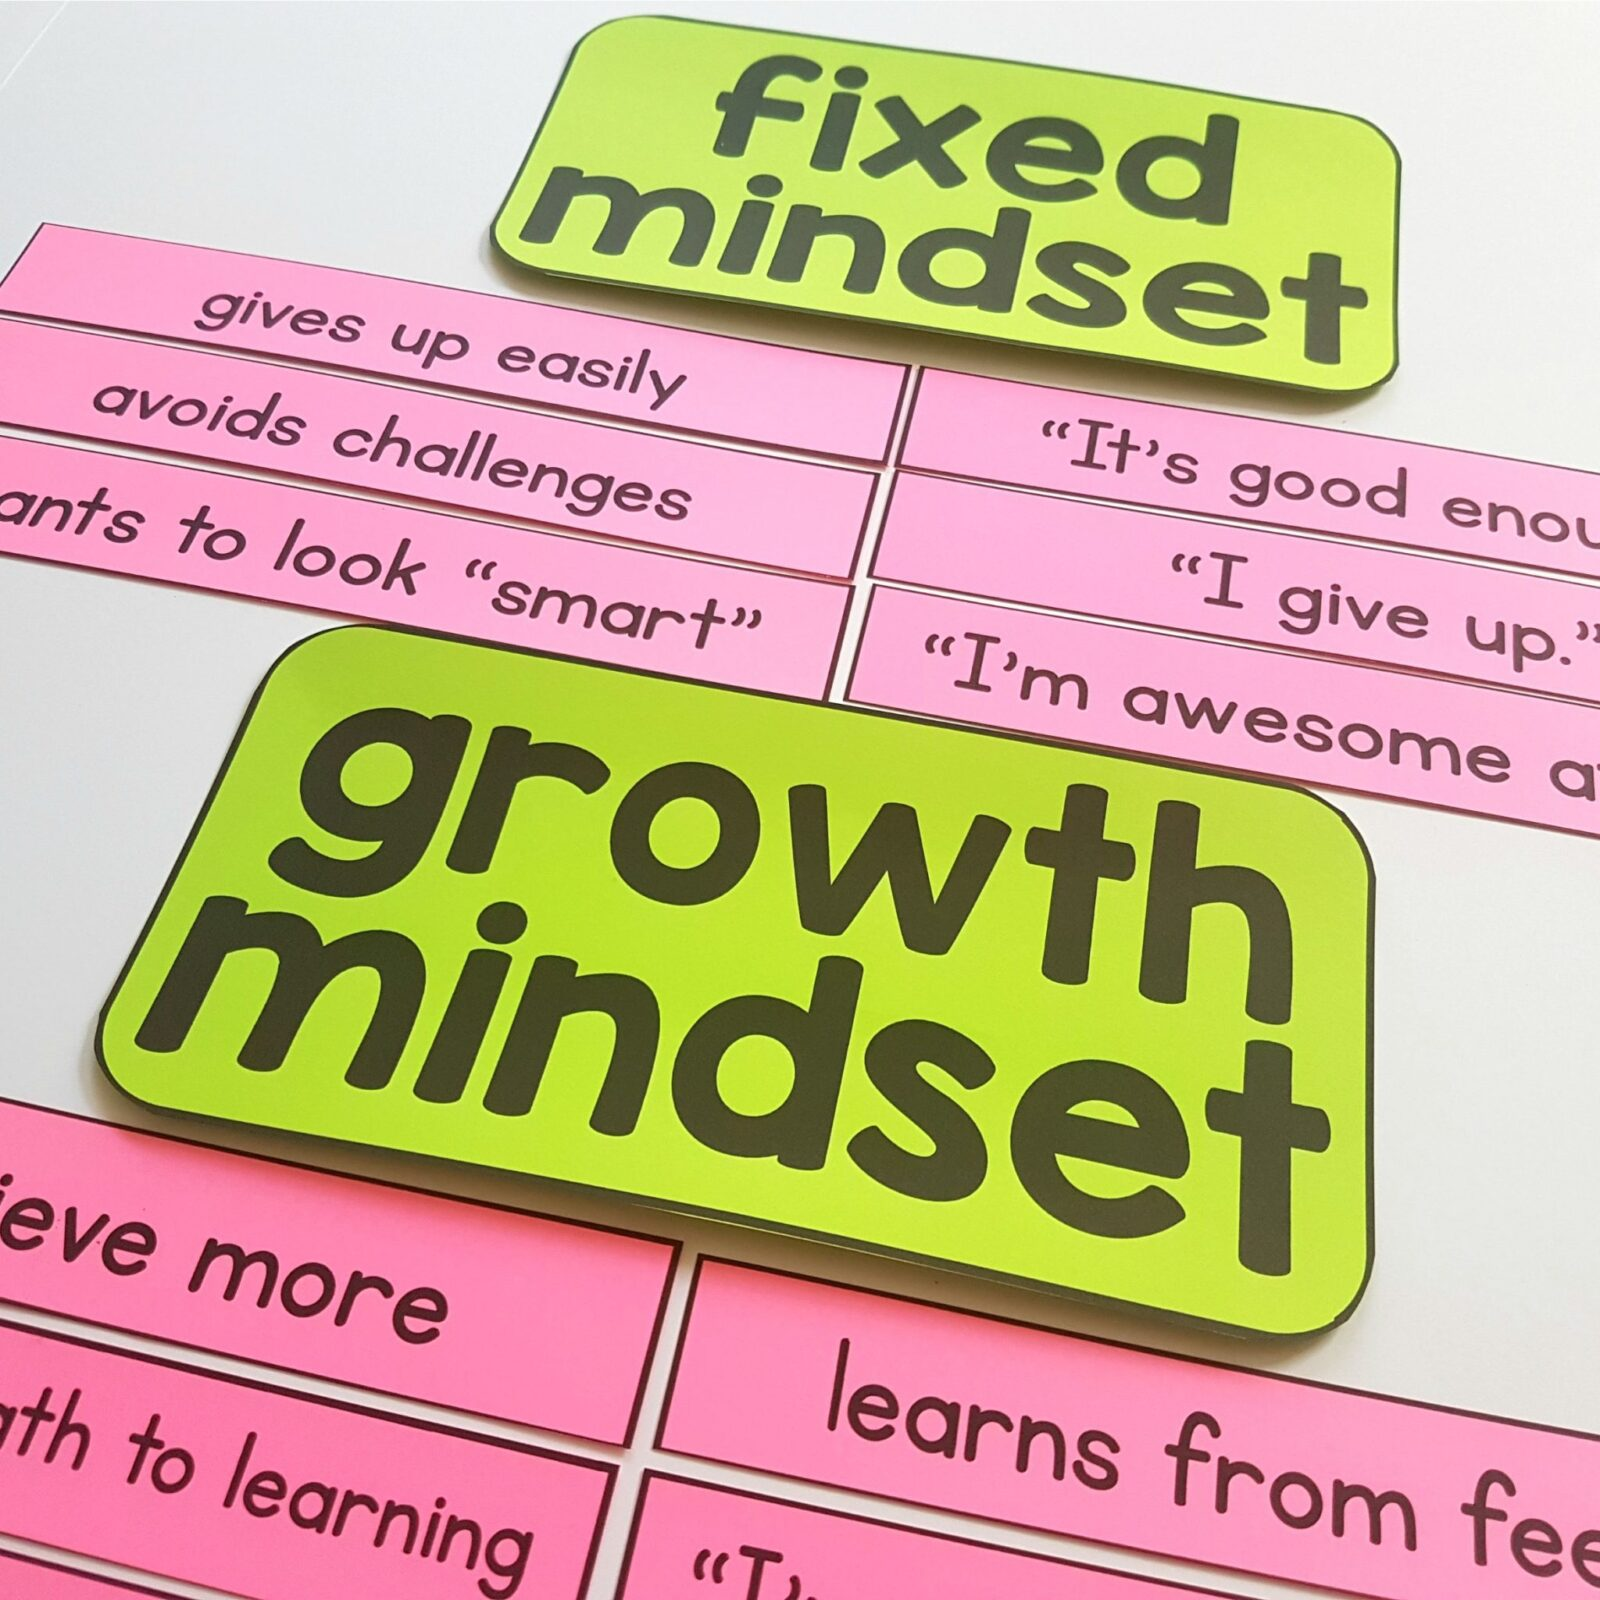 growth mindset examples - growth mindset versus fixed mindset sentence sort activity for kids